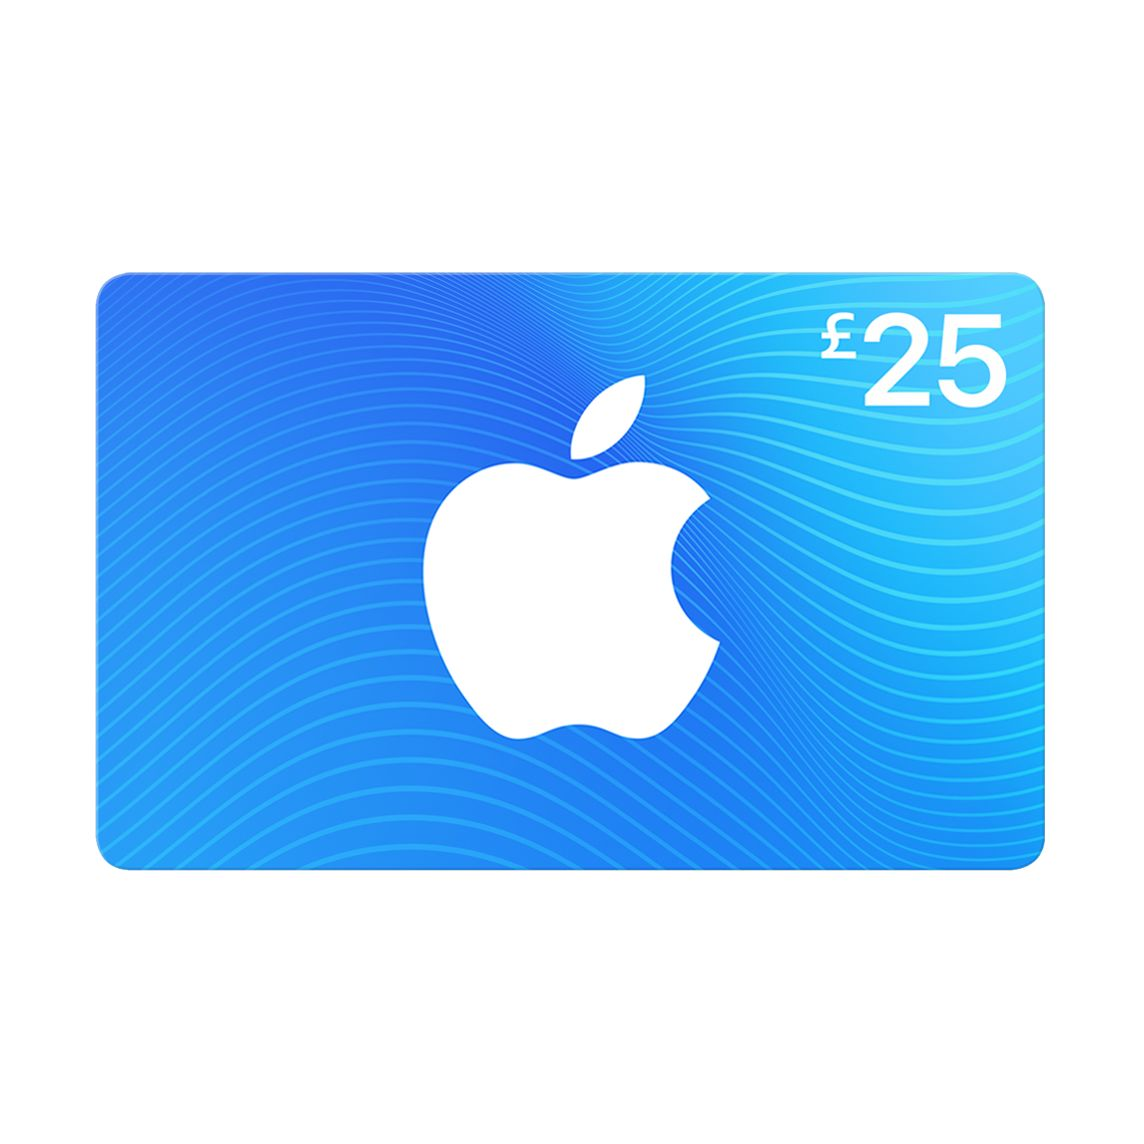 App Store & iTunes Gift Cards 50 Pack - £25